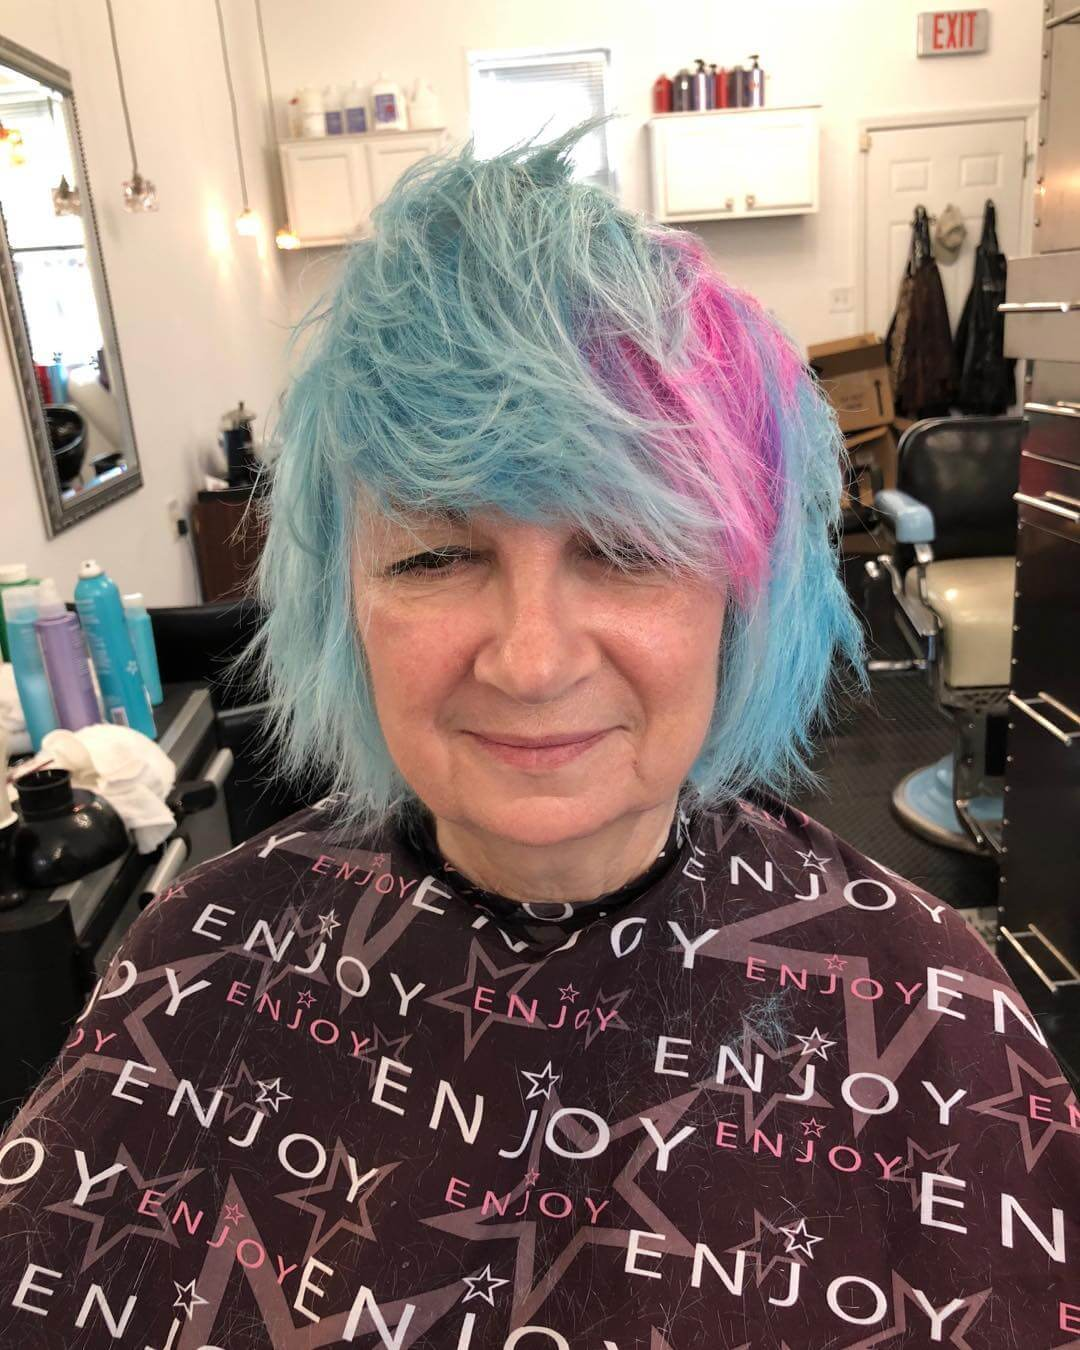 https://zhurnal-lady.com/wp-content/uploads/2019/12/shaggy-hairstyles-for-women-over-50-48.jpg